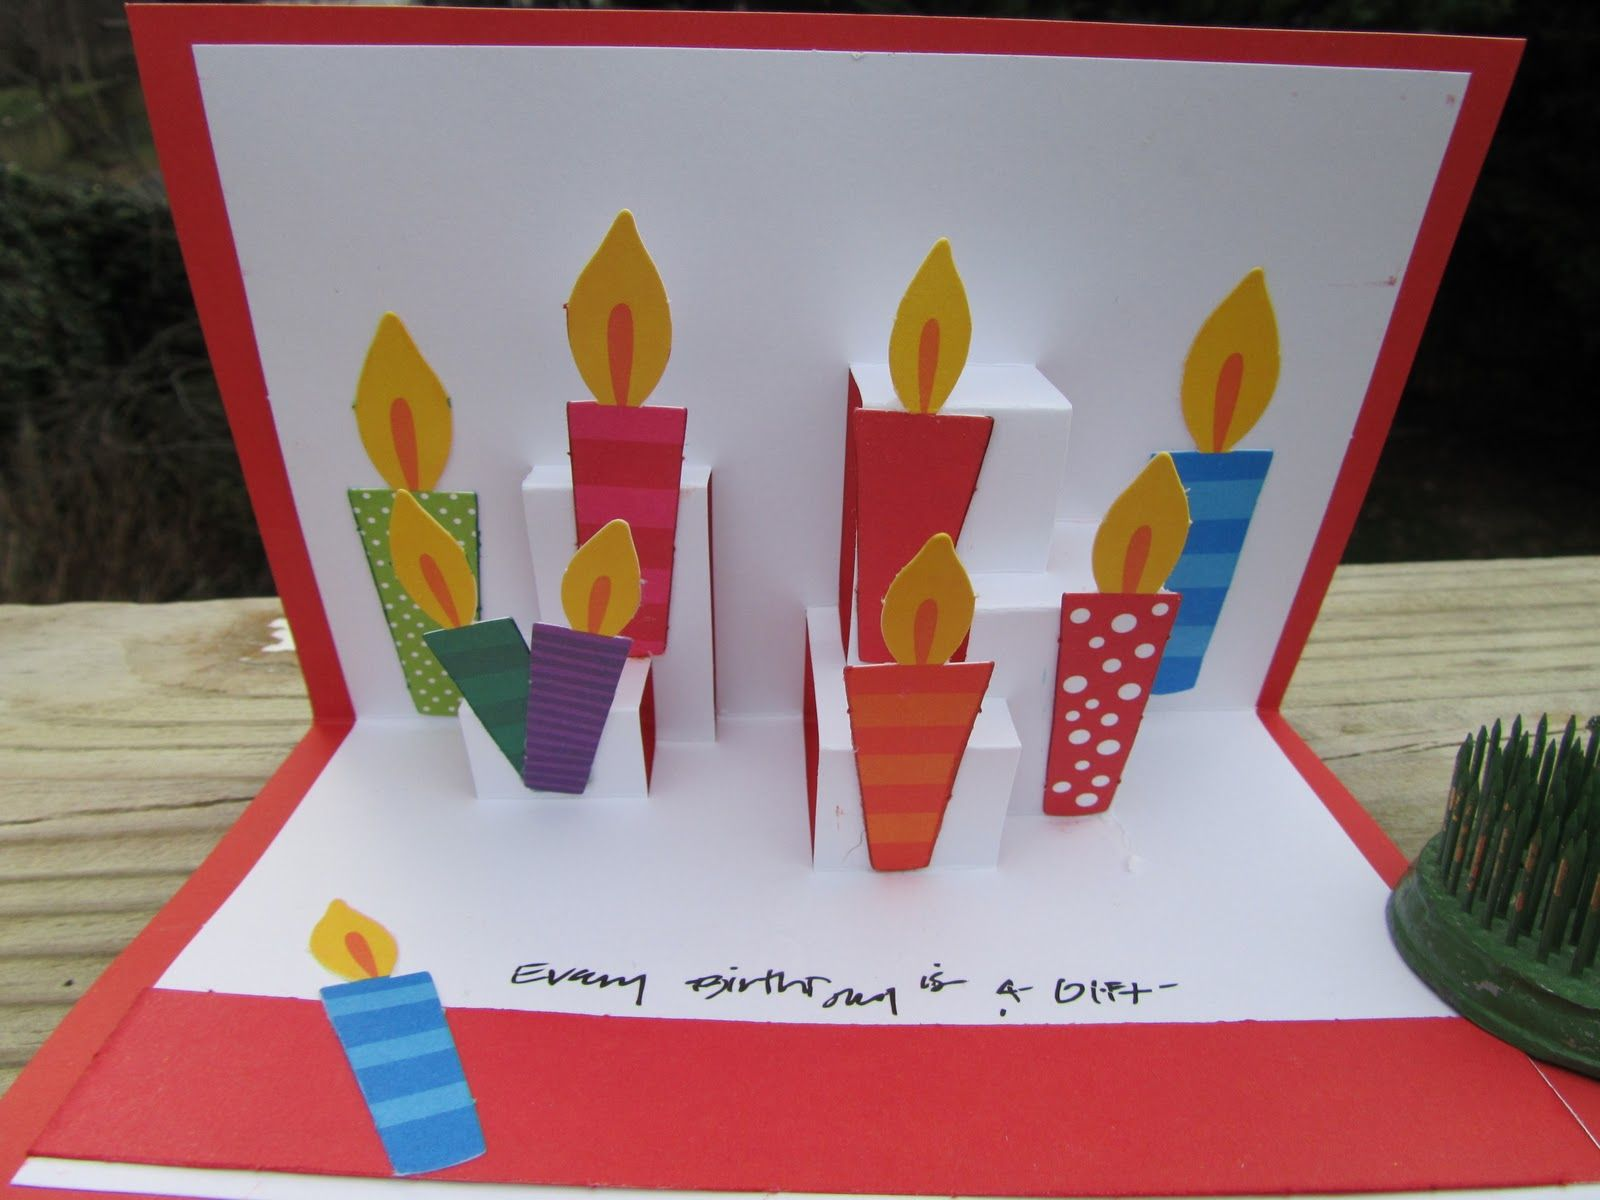 Candle birthday card in pop up style for boyfriend cards candle birthday card in pop up style for boyfriend bookmarktalkfo